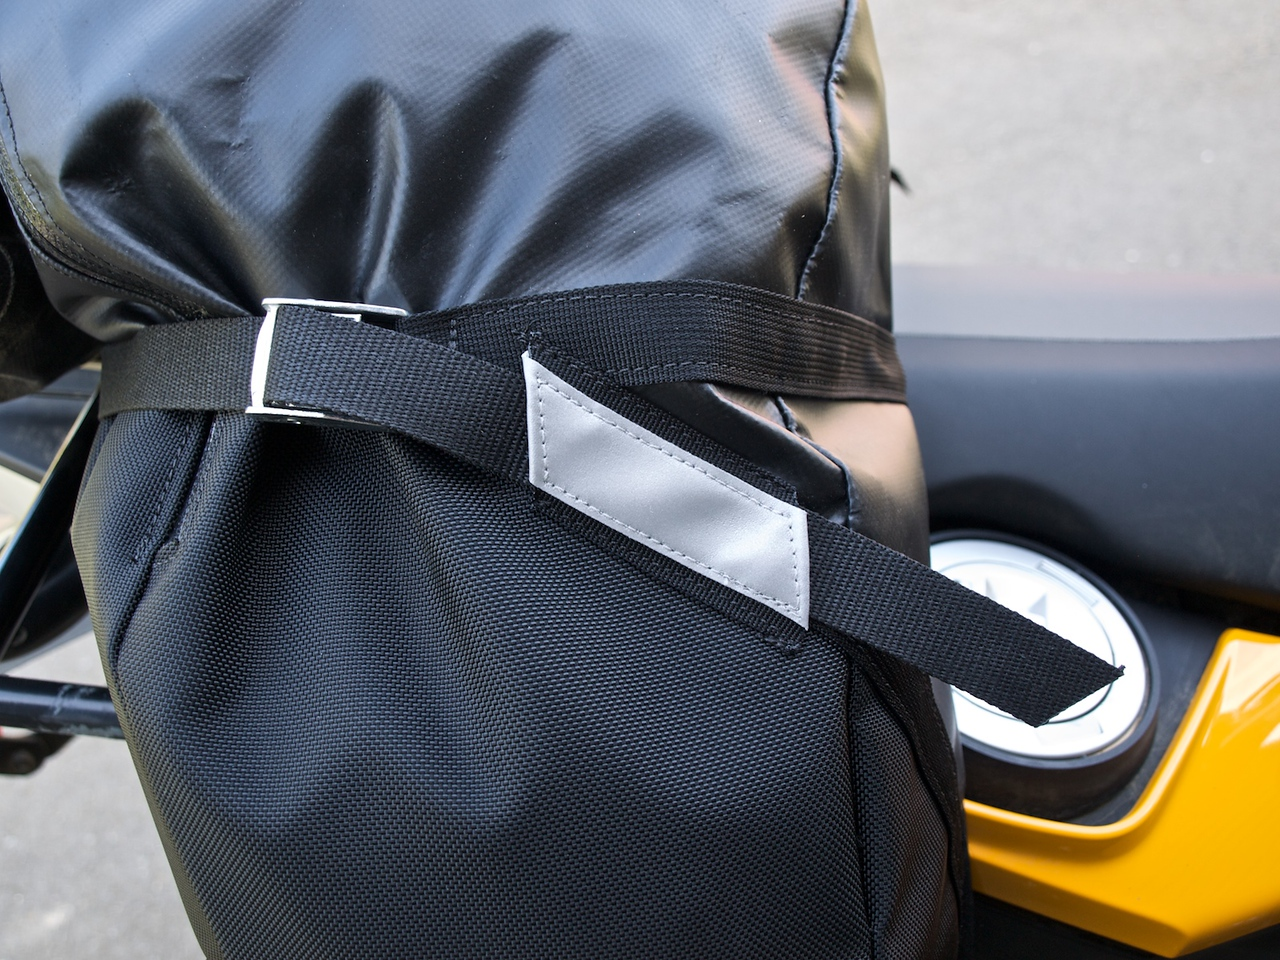 A slot behind the reflective patch to capture the tail of the strap. Nice touch.